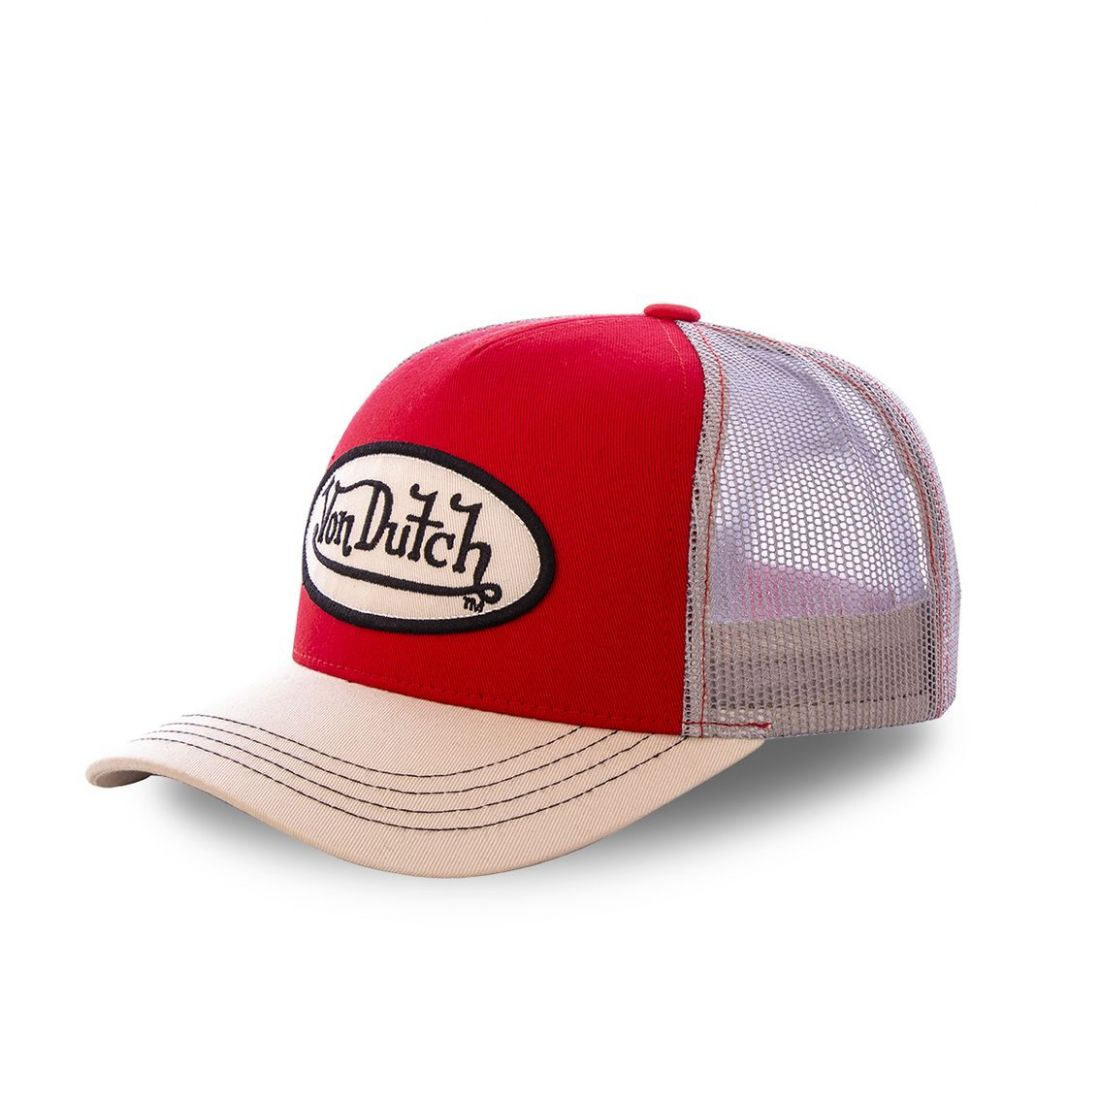 Casquette baseball Von Dutch Colors Rouge et Blanc